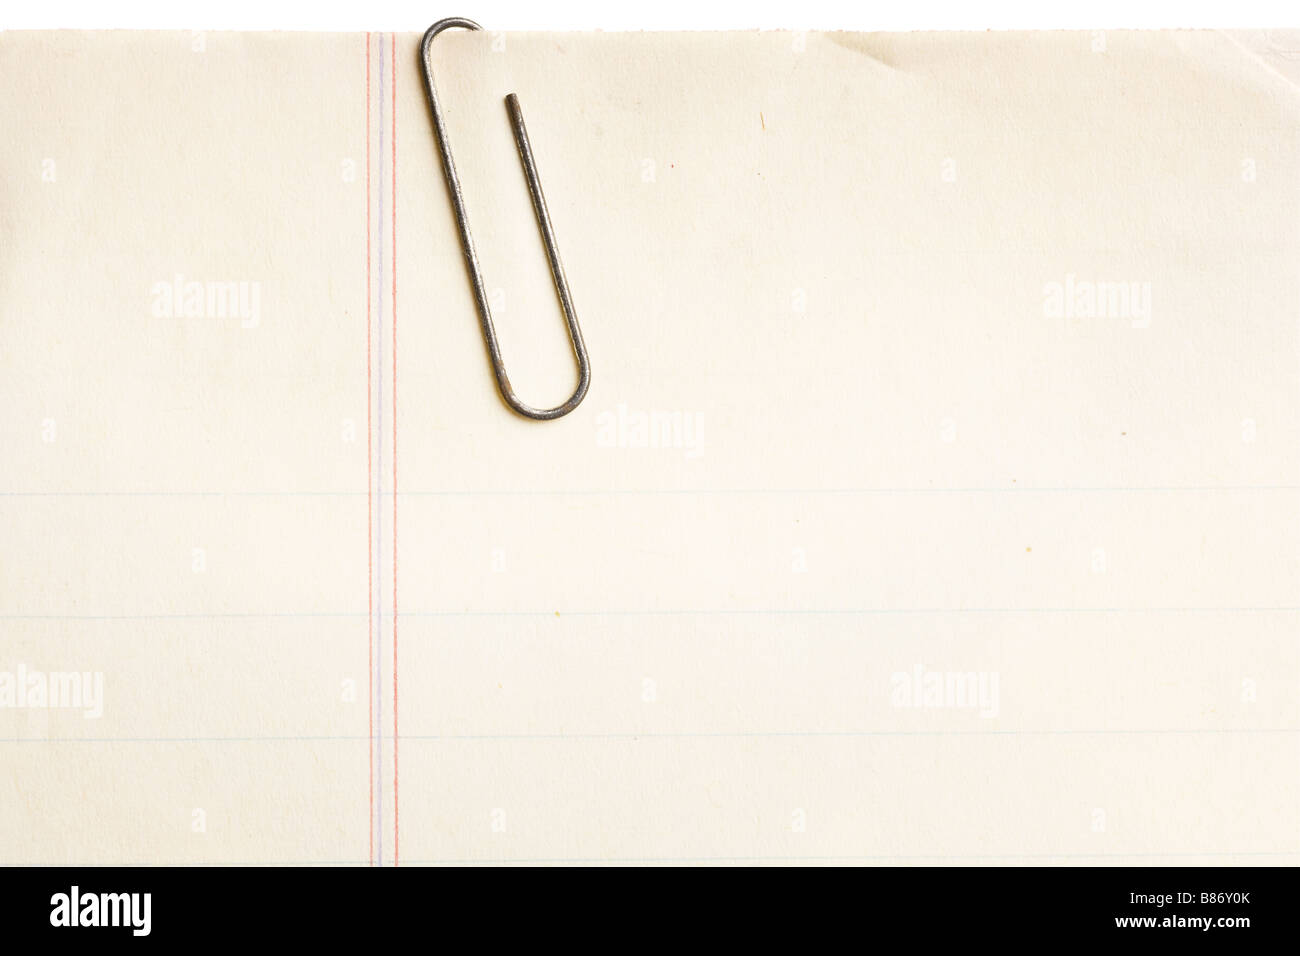 old lined paper with rusty paperclip attached - Stock Image